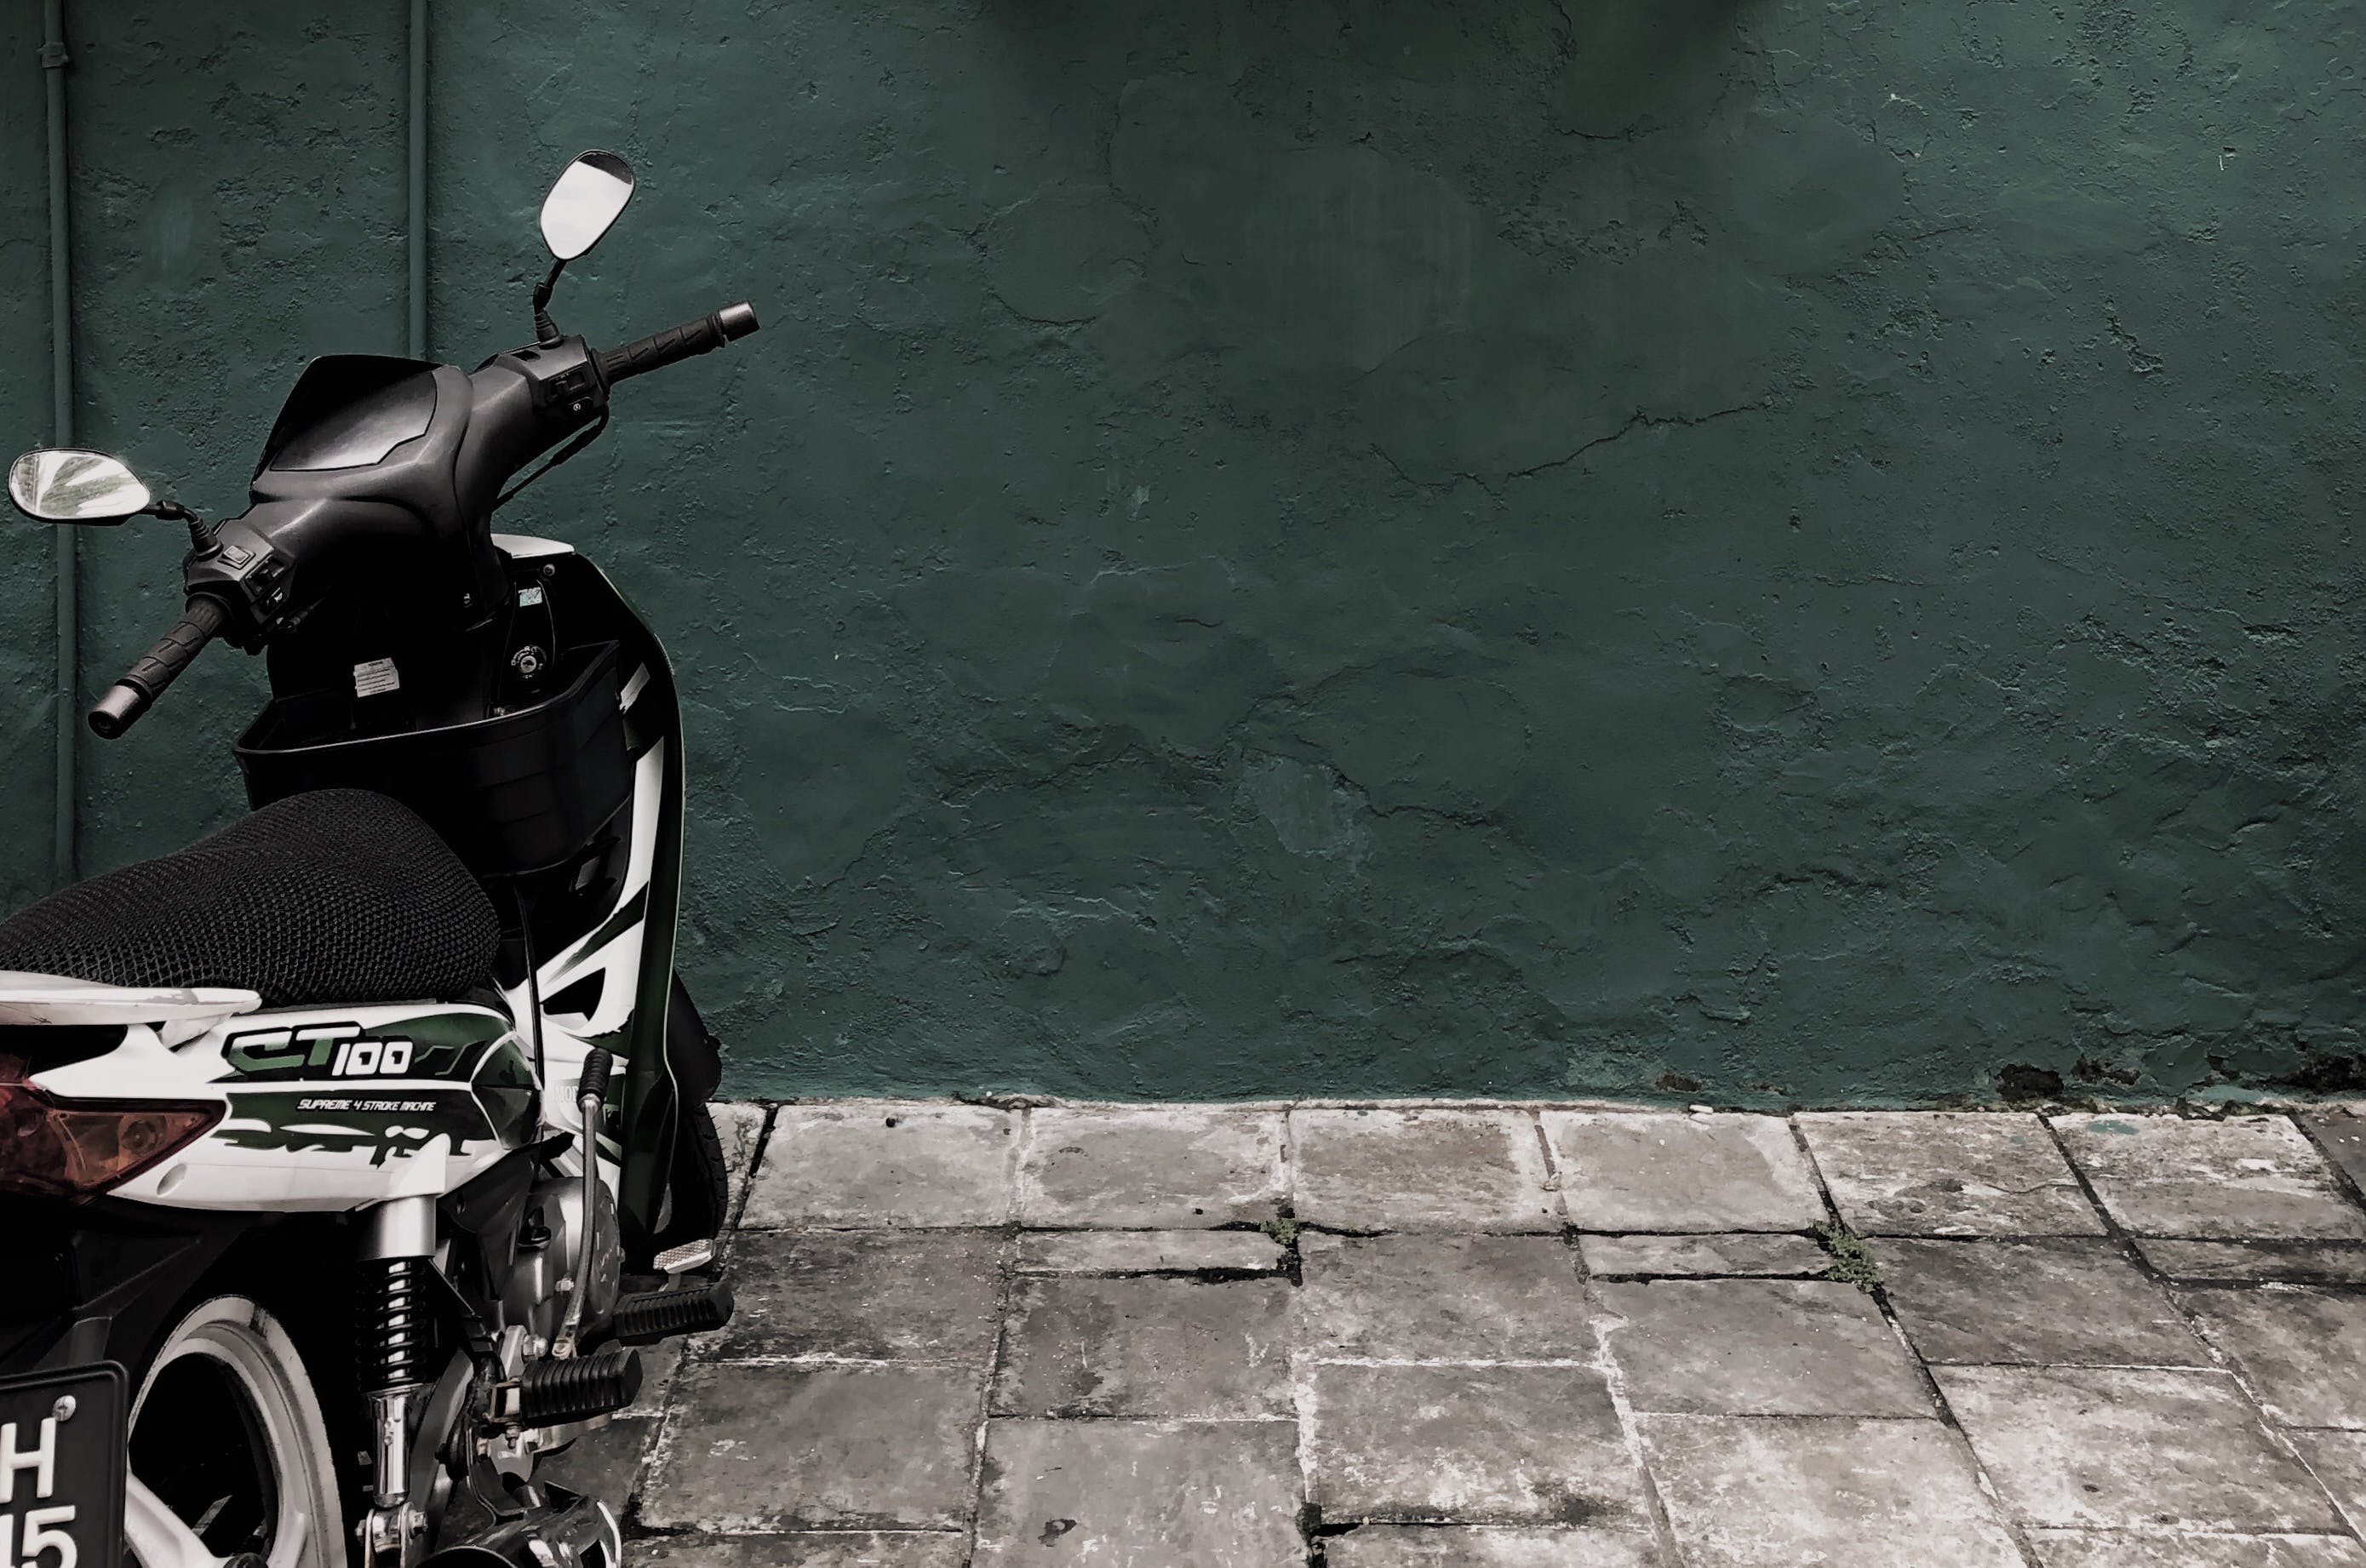 Black and White Ct 100 Motorcycle Parked Near Concrete Wall